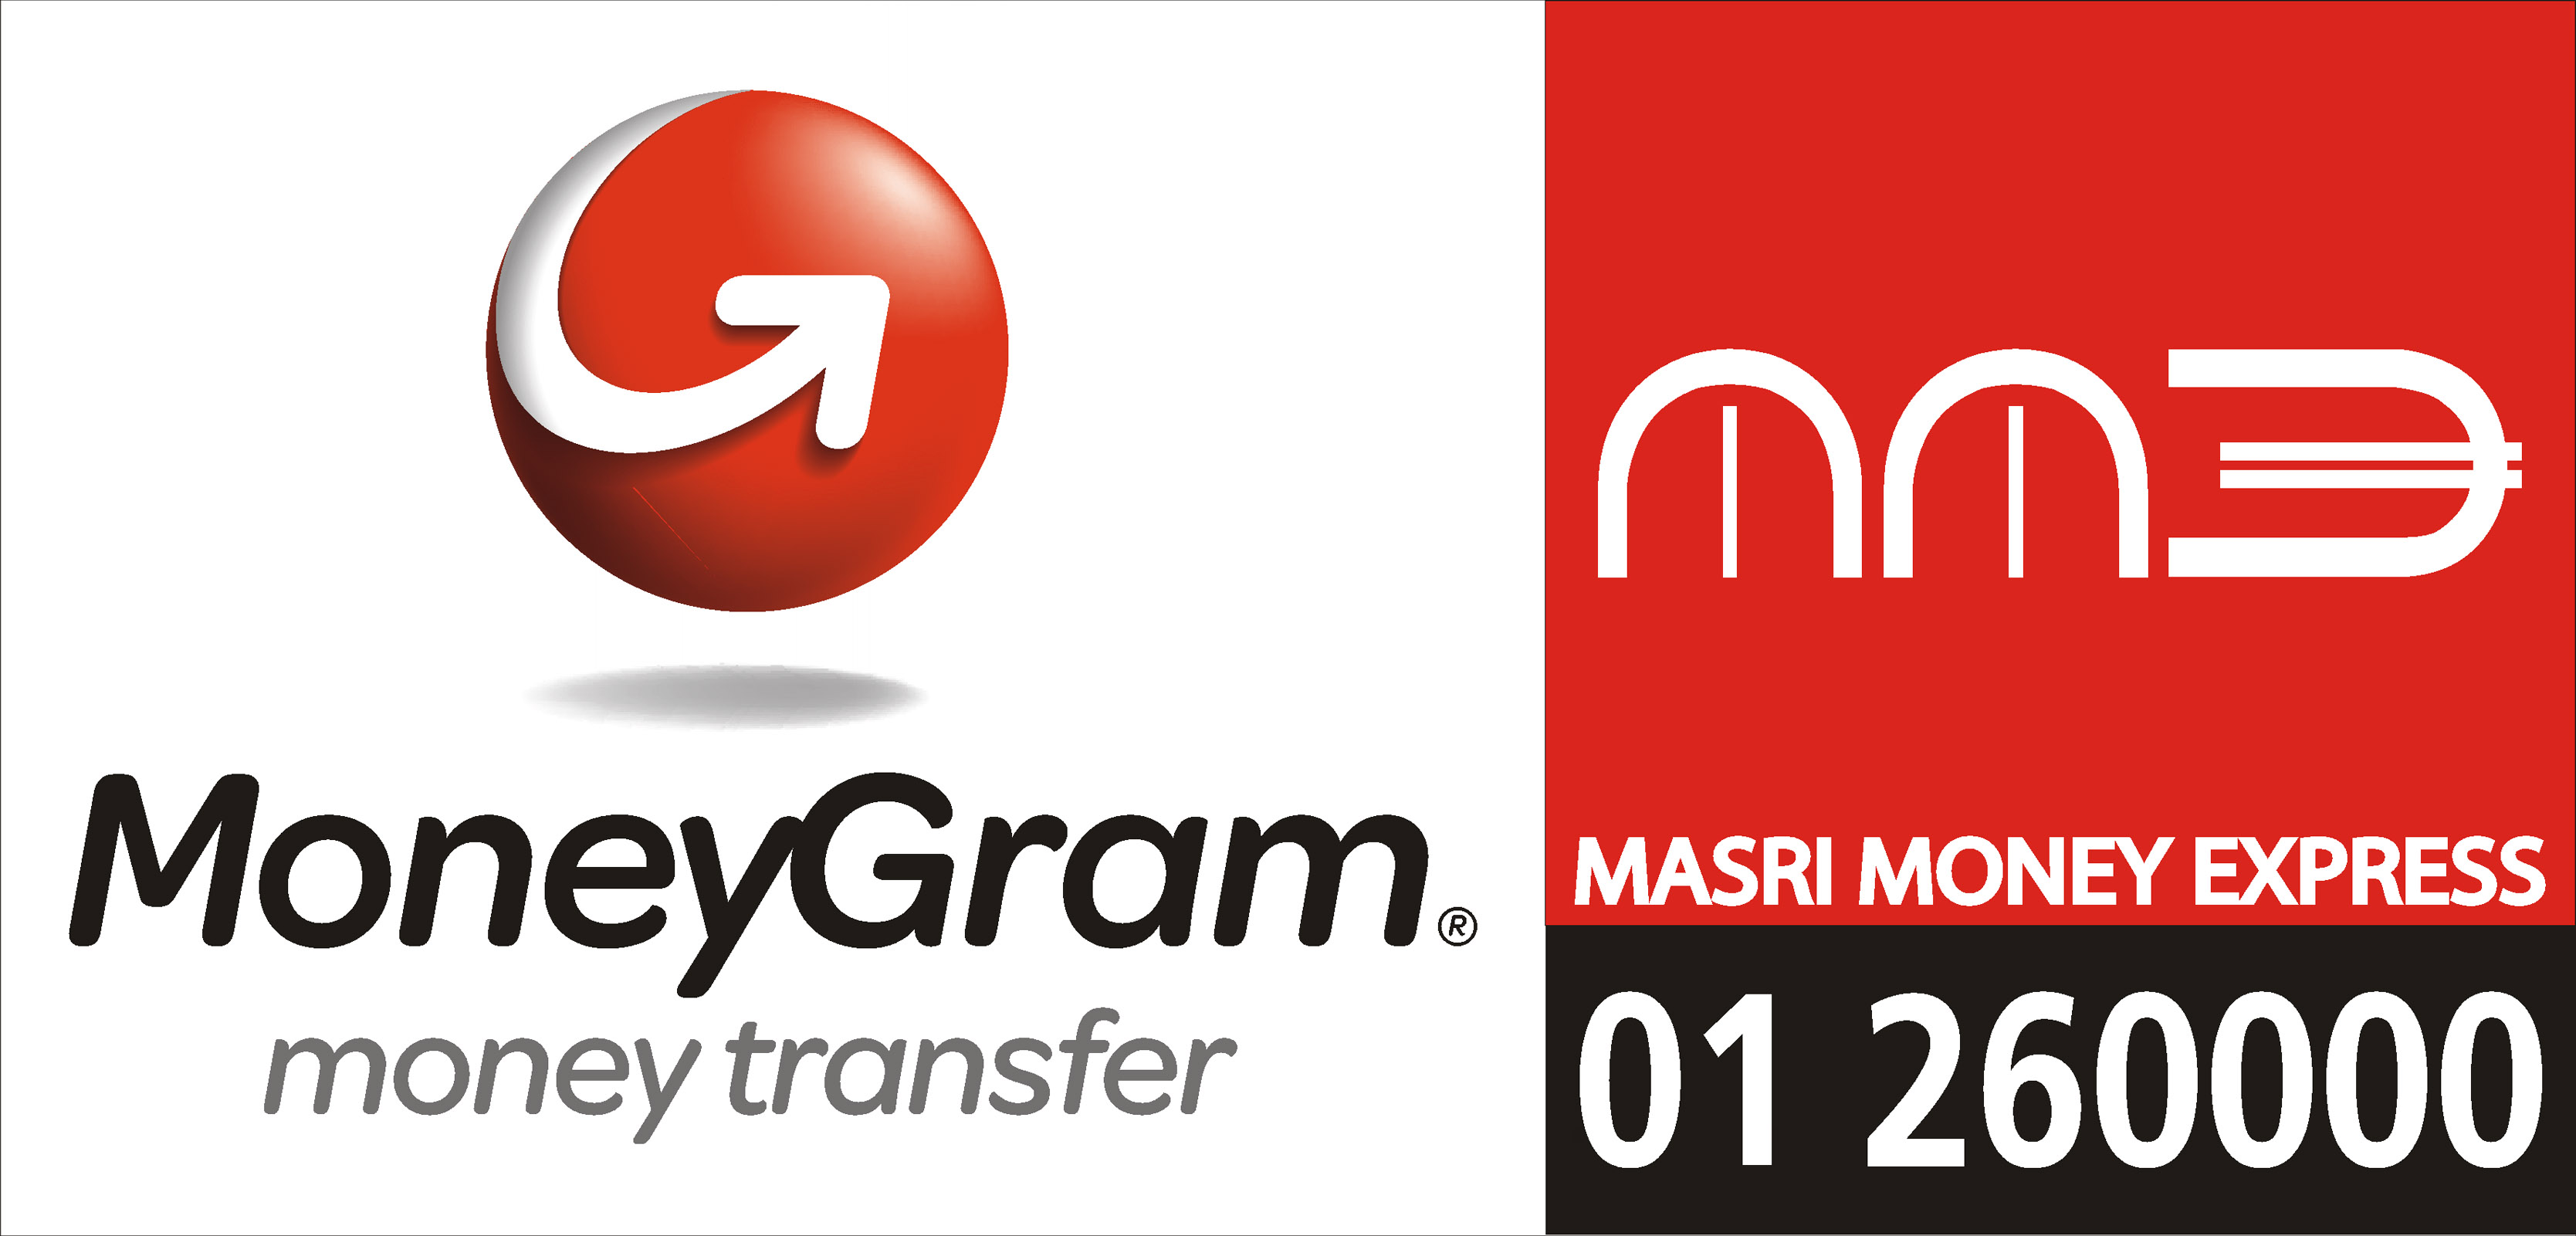 Moneygram Masri Money Express